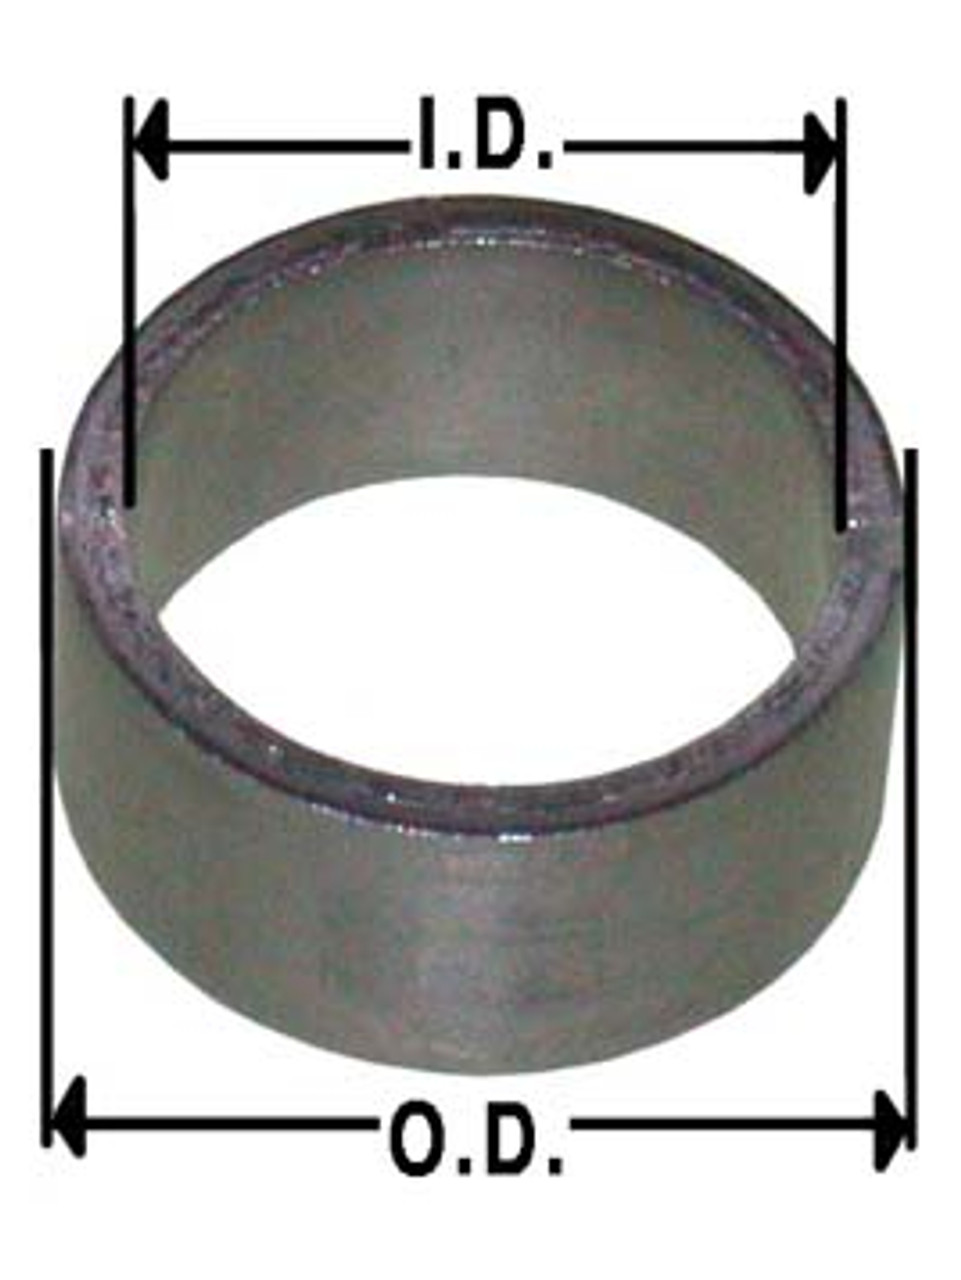 05723-95 --- Bushing for GT400 Top Tray